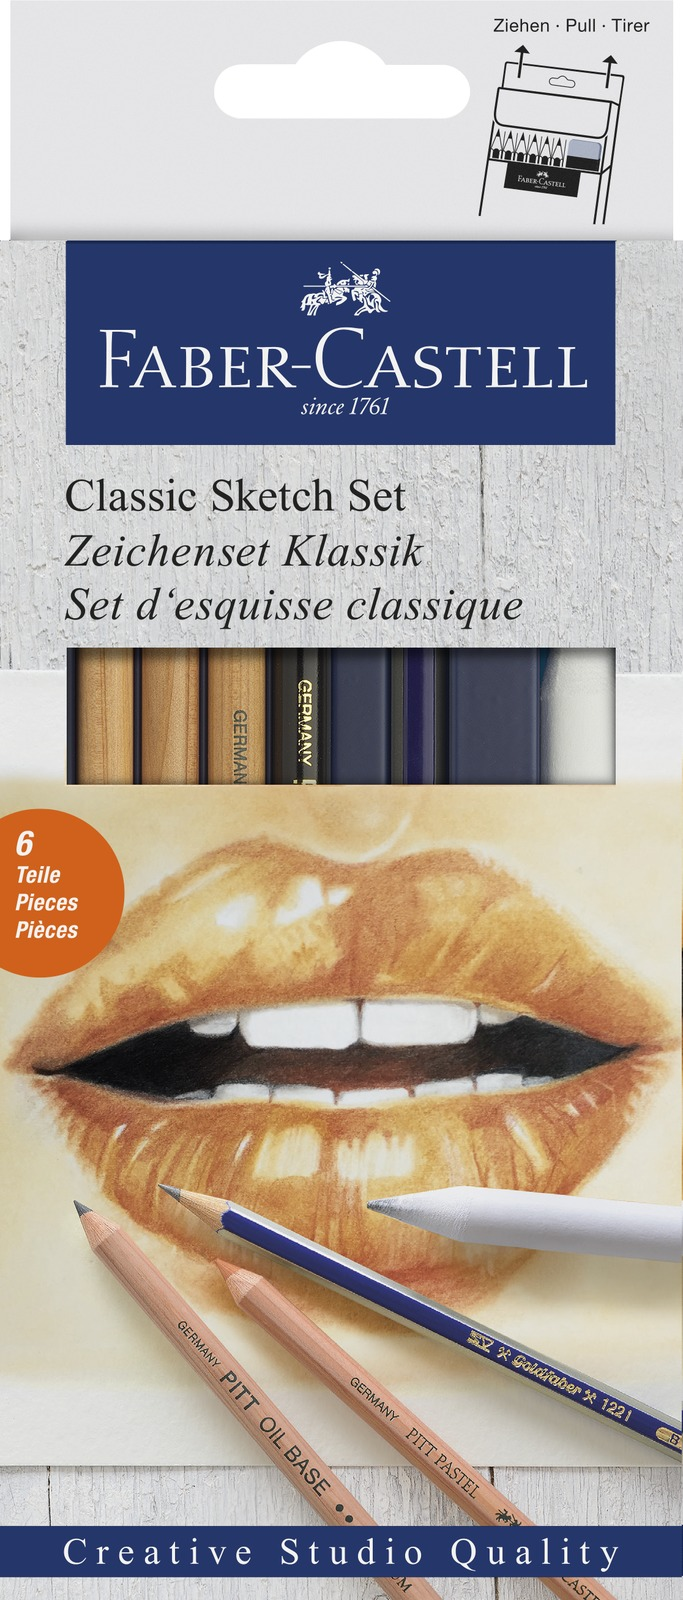 Faber-Castell: Classic Sketch Set image